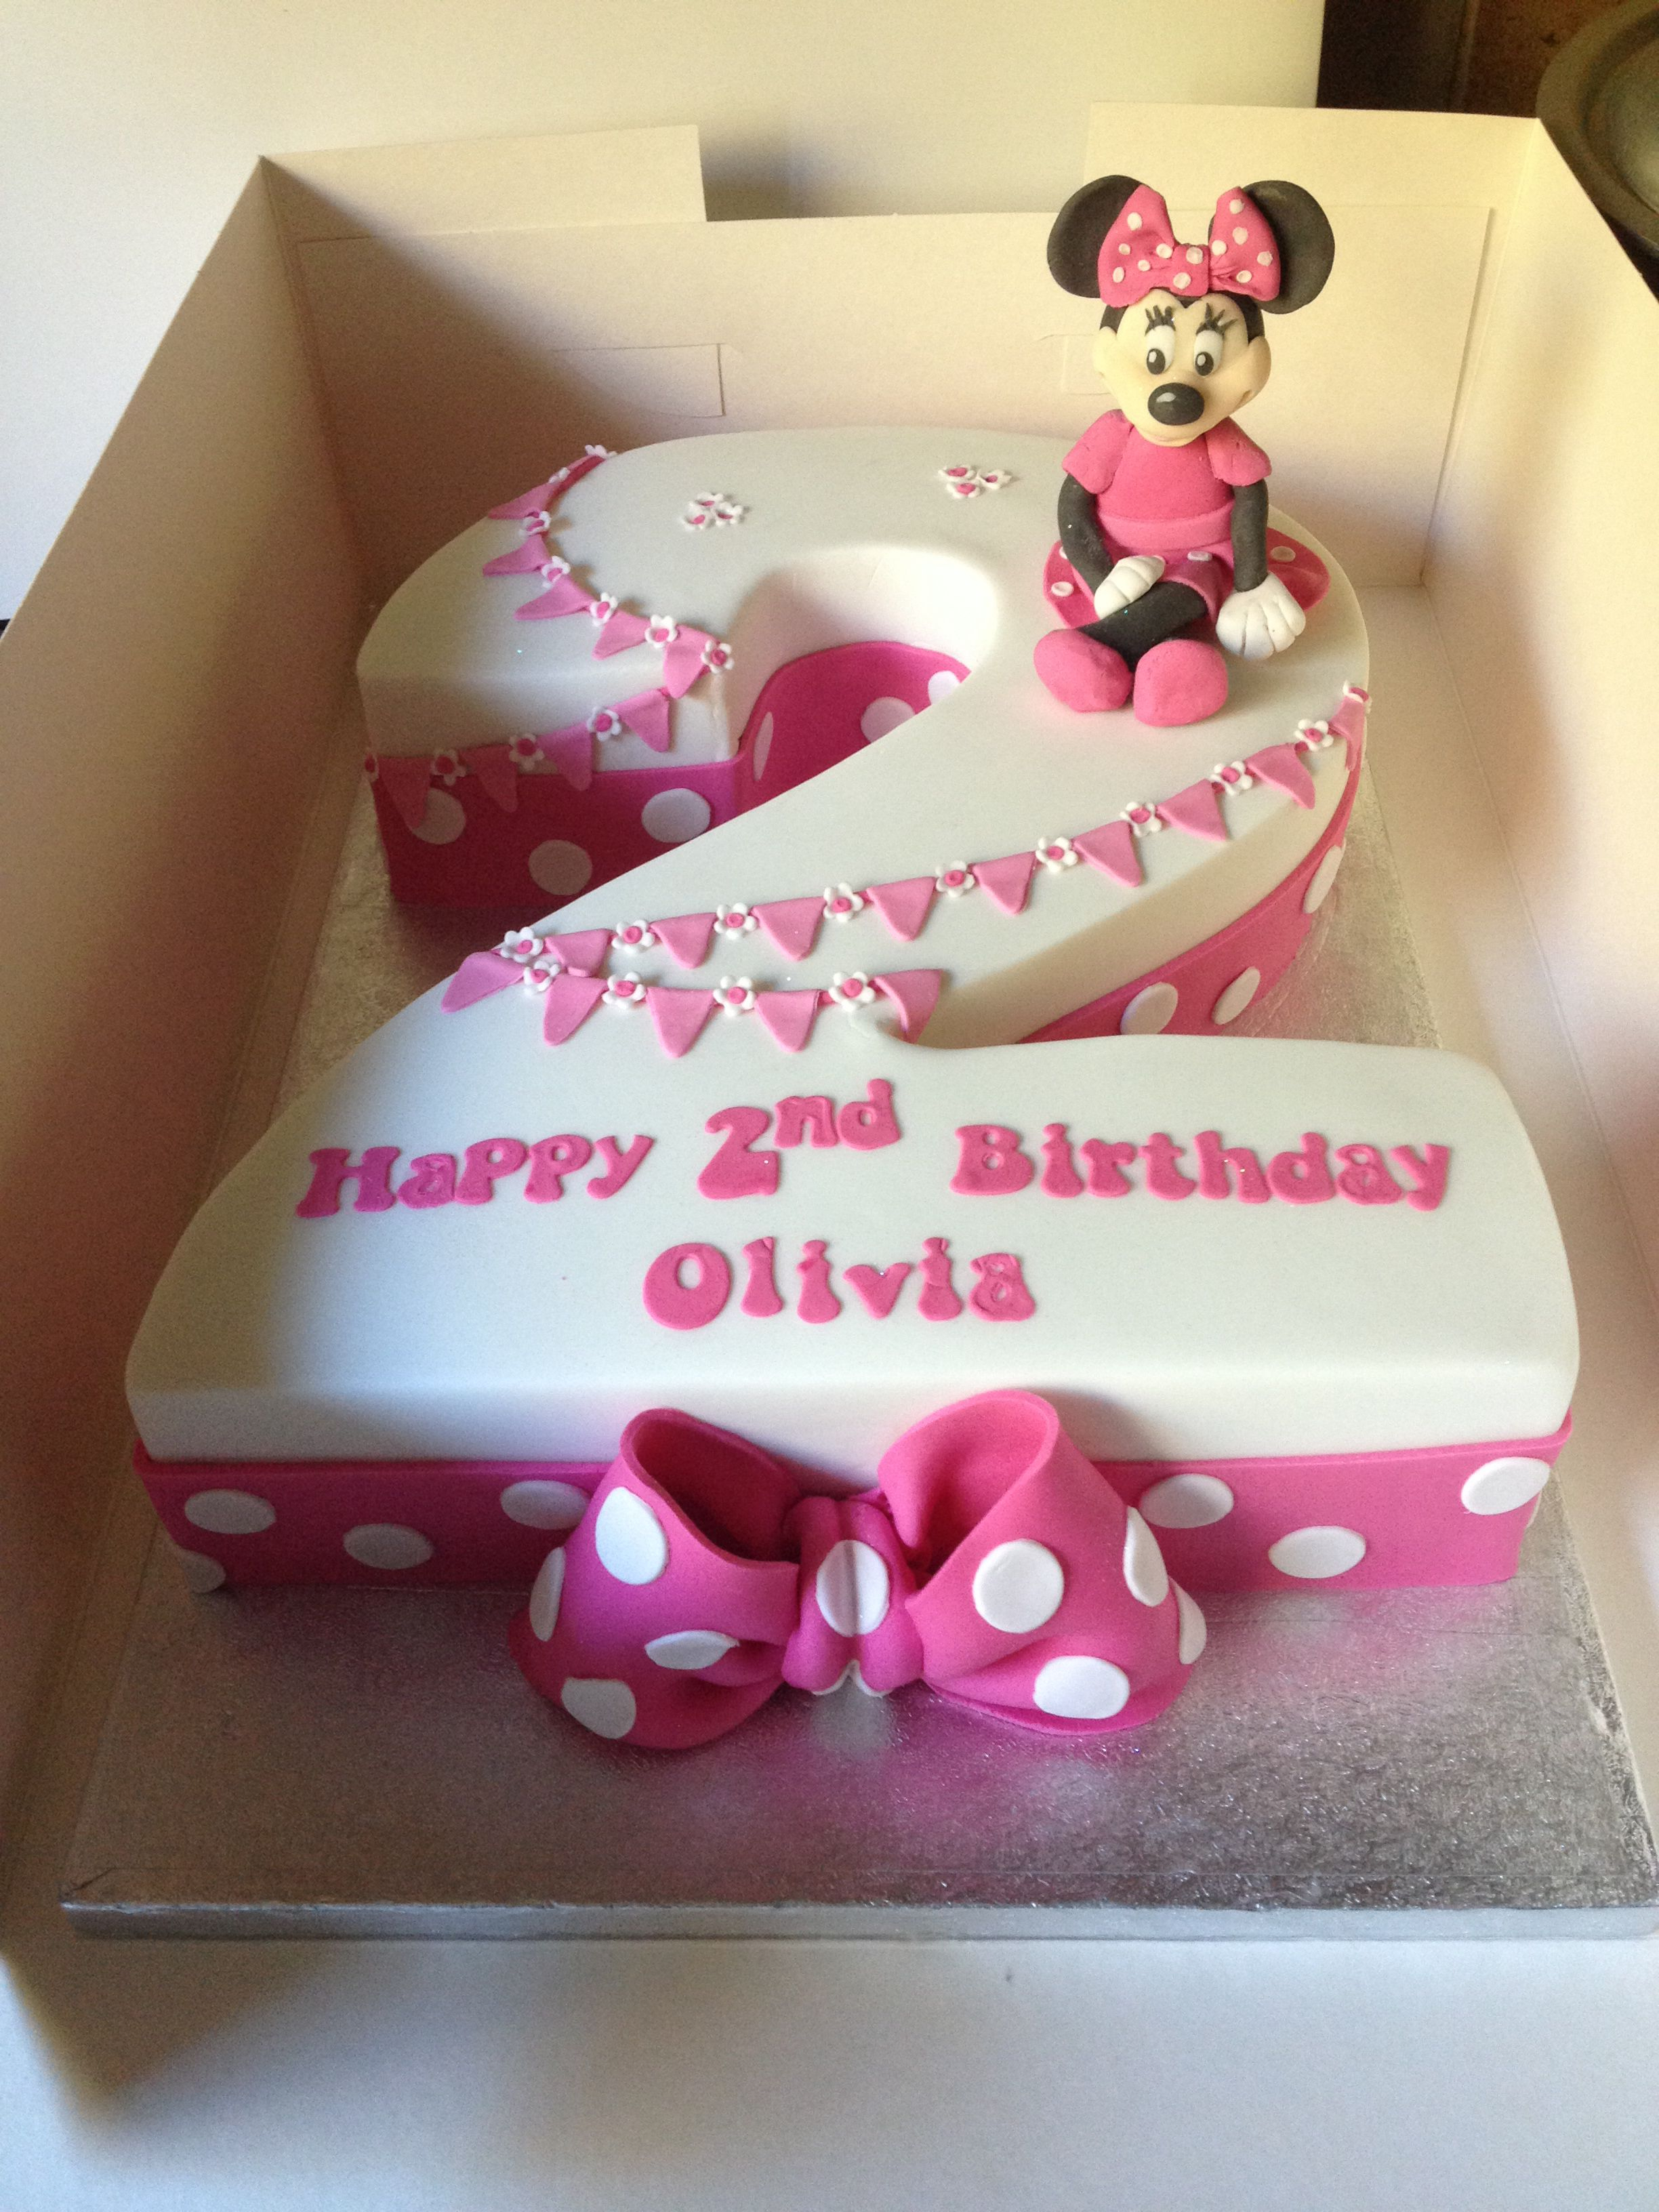 Birthday Cake For Her This Is The One I Want For My Skylar One Her Second Birthday